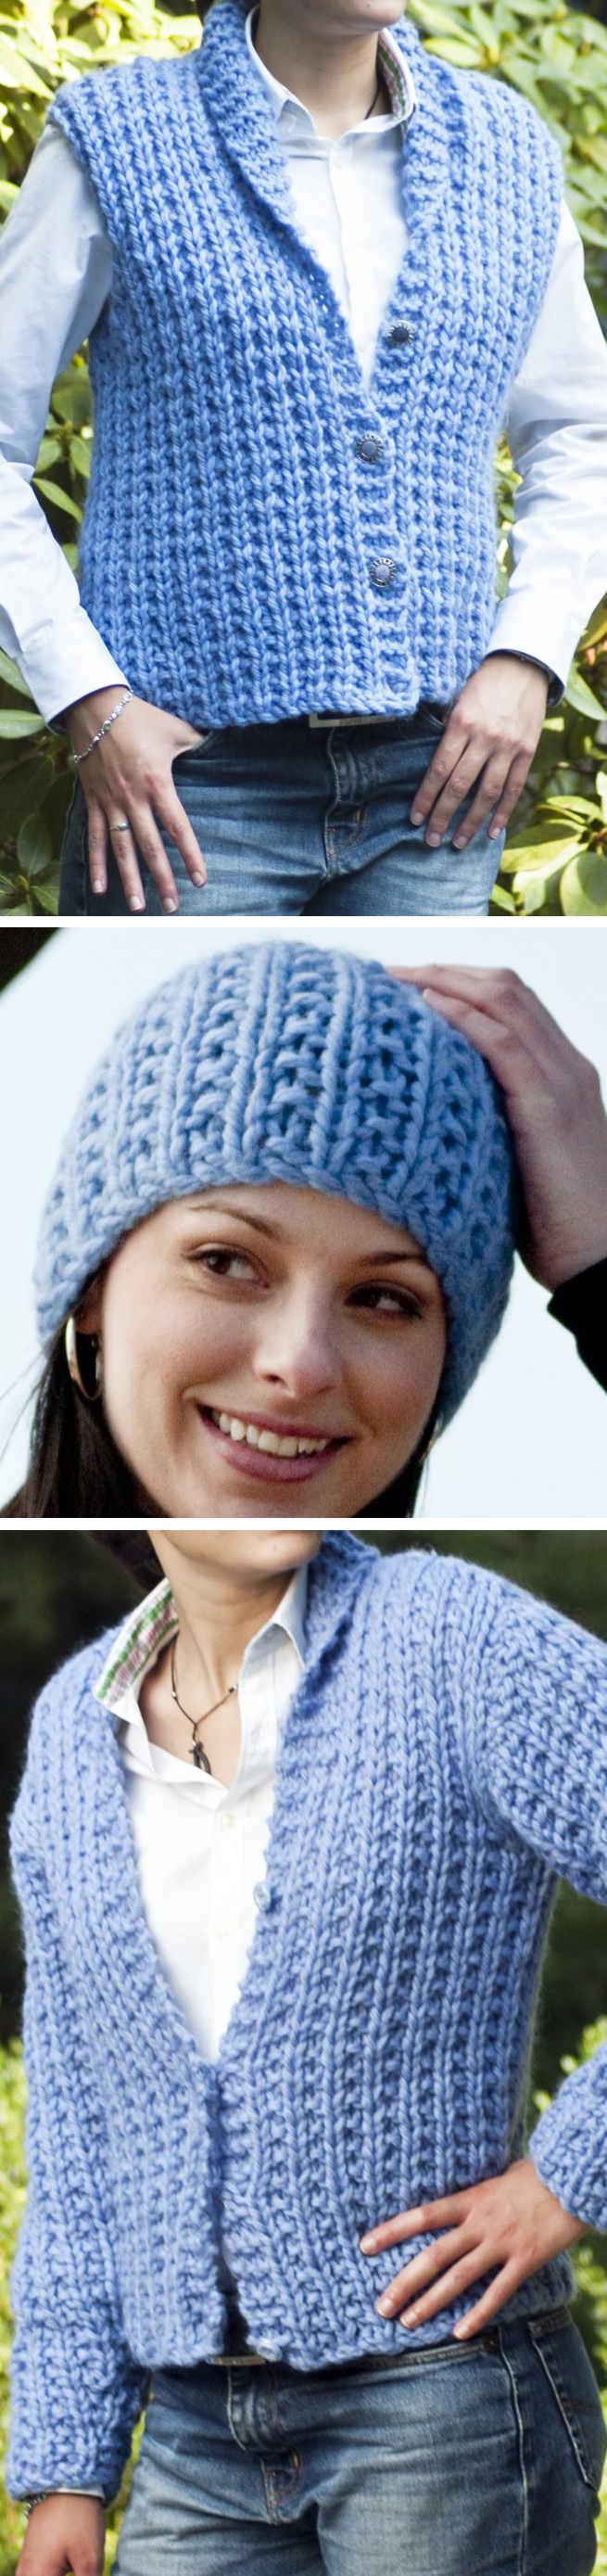 Free Knitting Pattern for 2 Row Repeat Lana Vest, Cardigan, and Hat Set